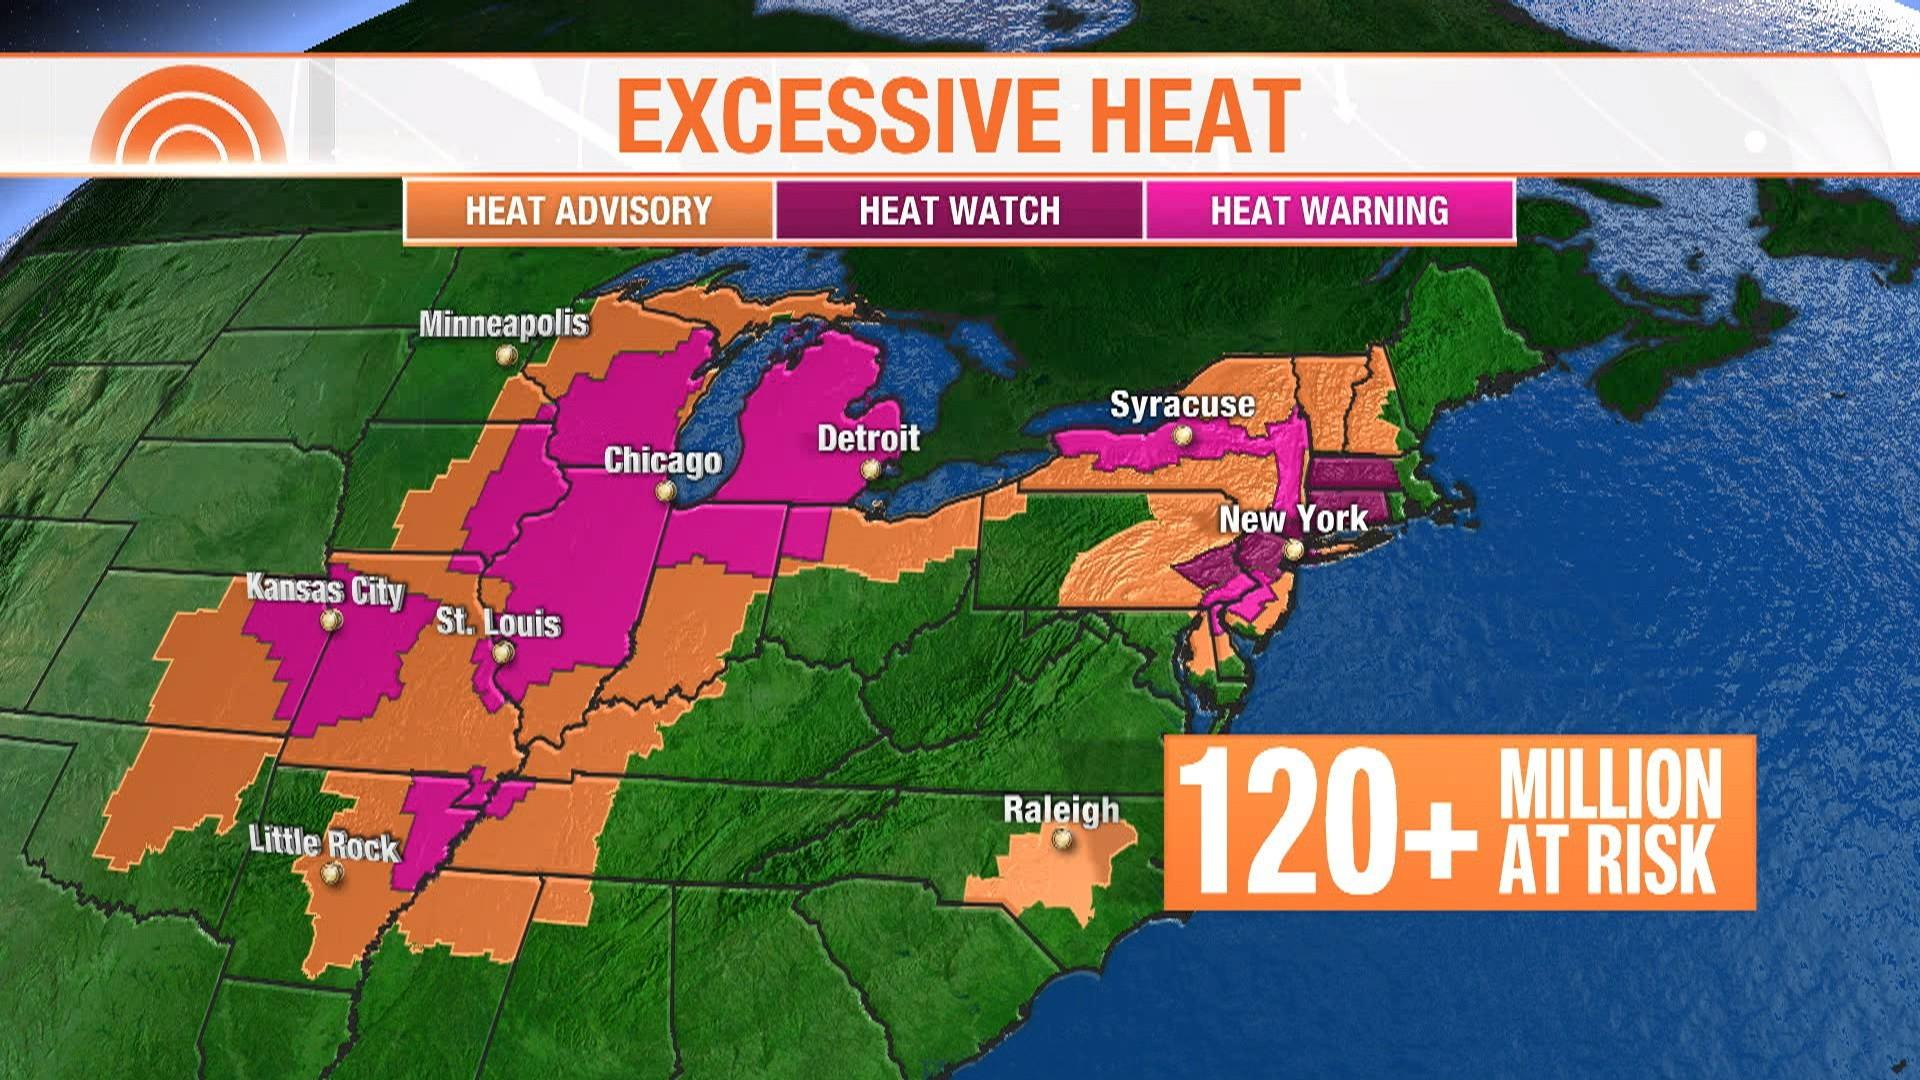 Dangerous heat wave to blanket 120 million people across US